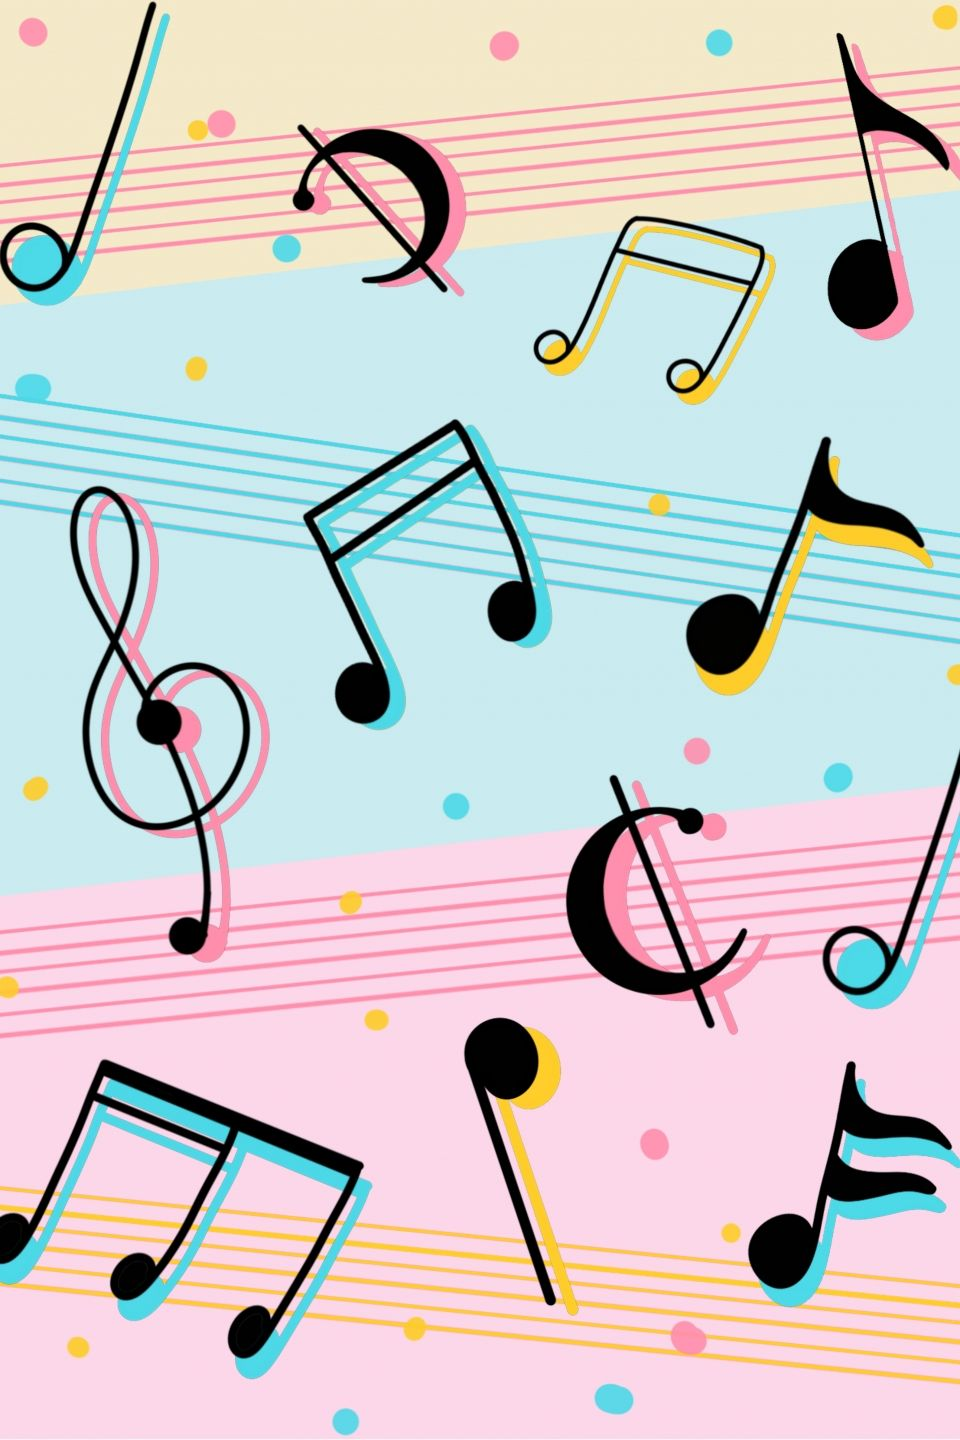 Music Festival Musical Note Line Background Music Notes Art Music Notes Background Music Wallpaper